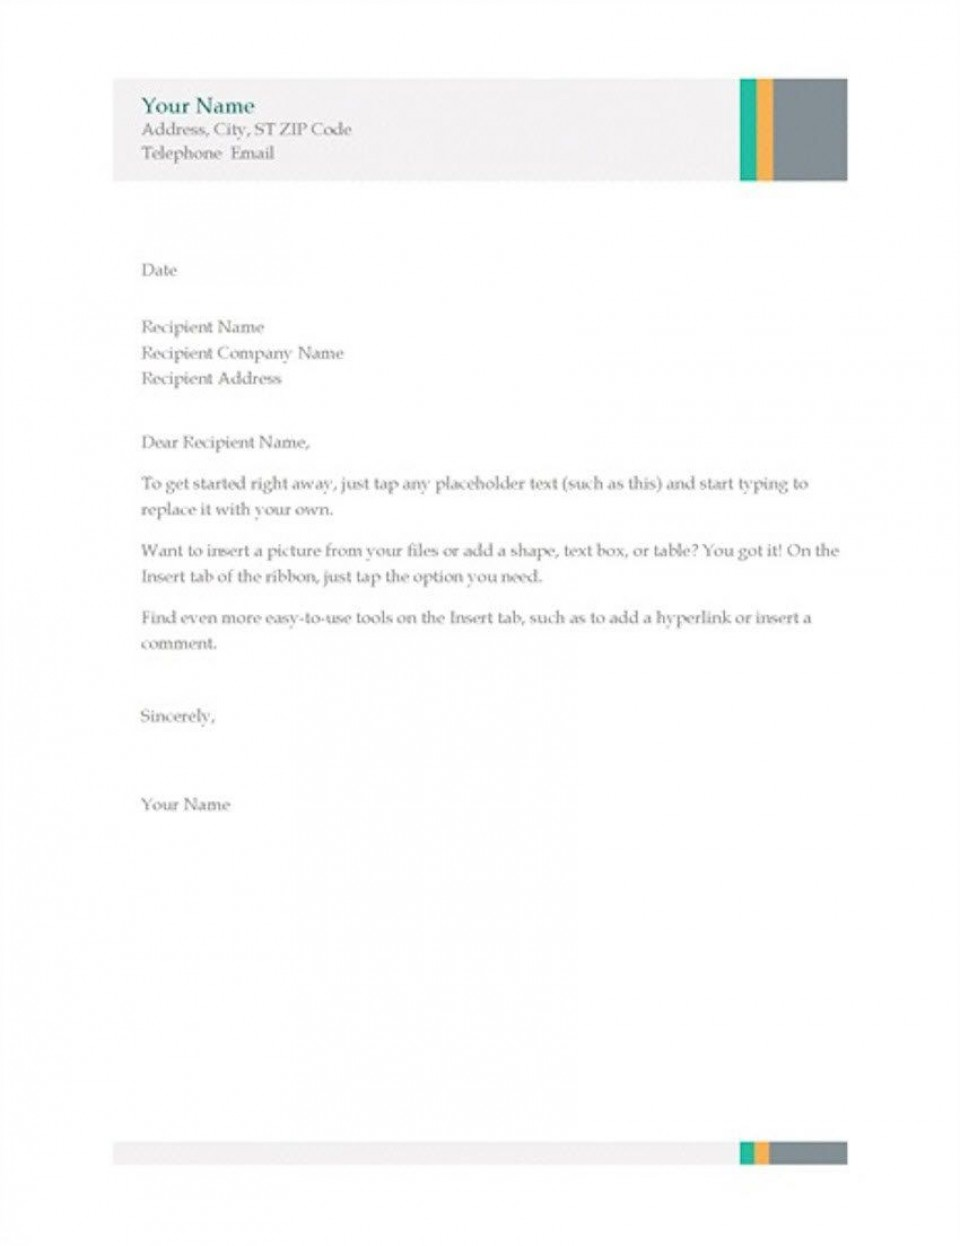 006 Archaicawful Letterhead Example Free Download High Definition  Format In Word For Company Pdf960